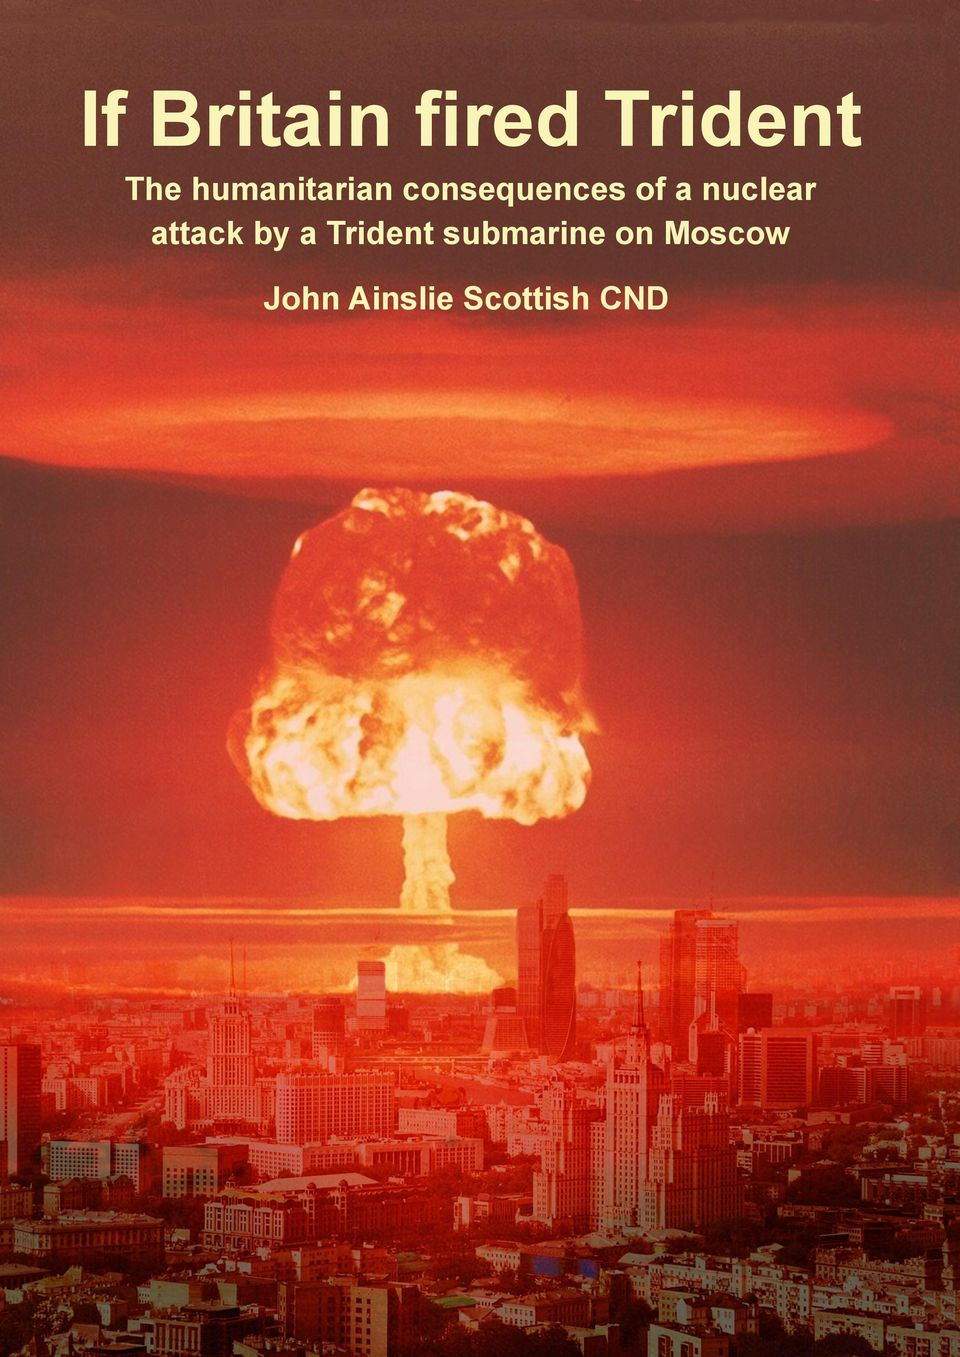 nuclear attack by a Trident